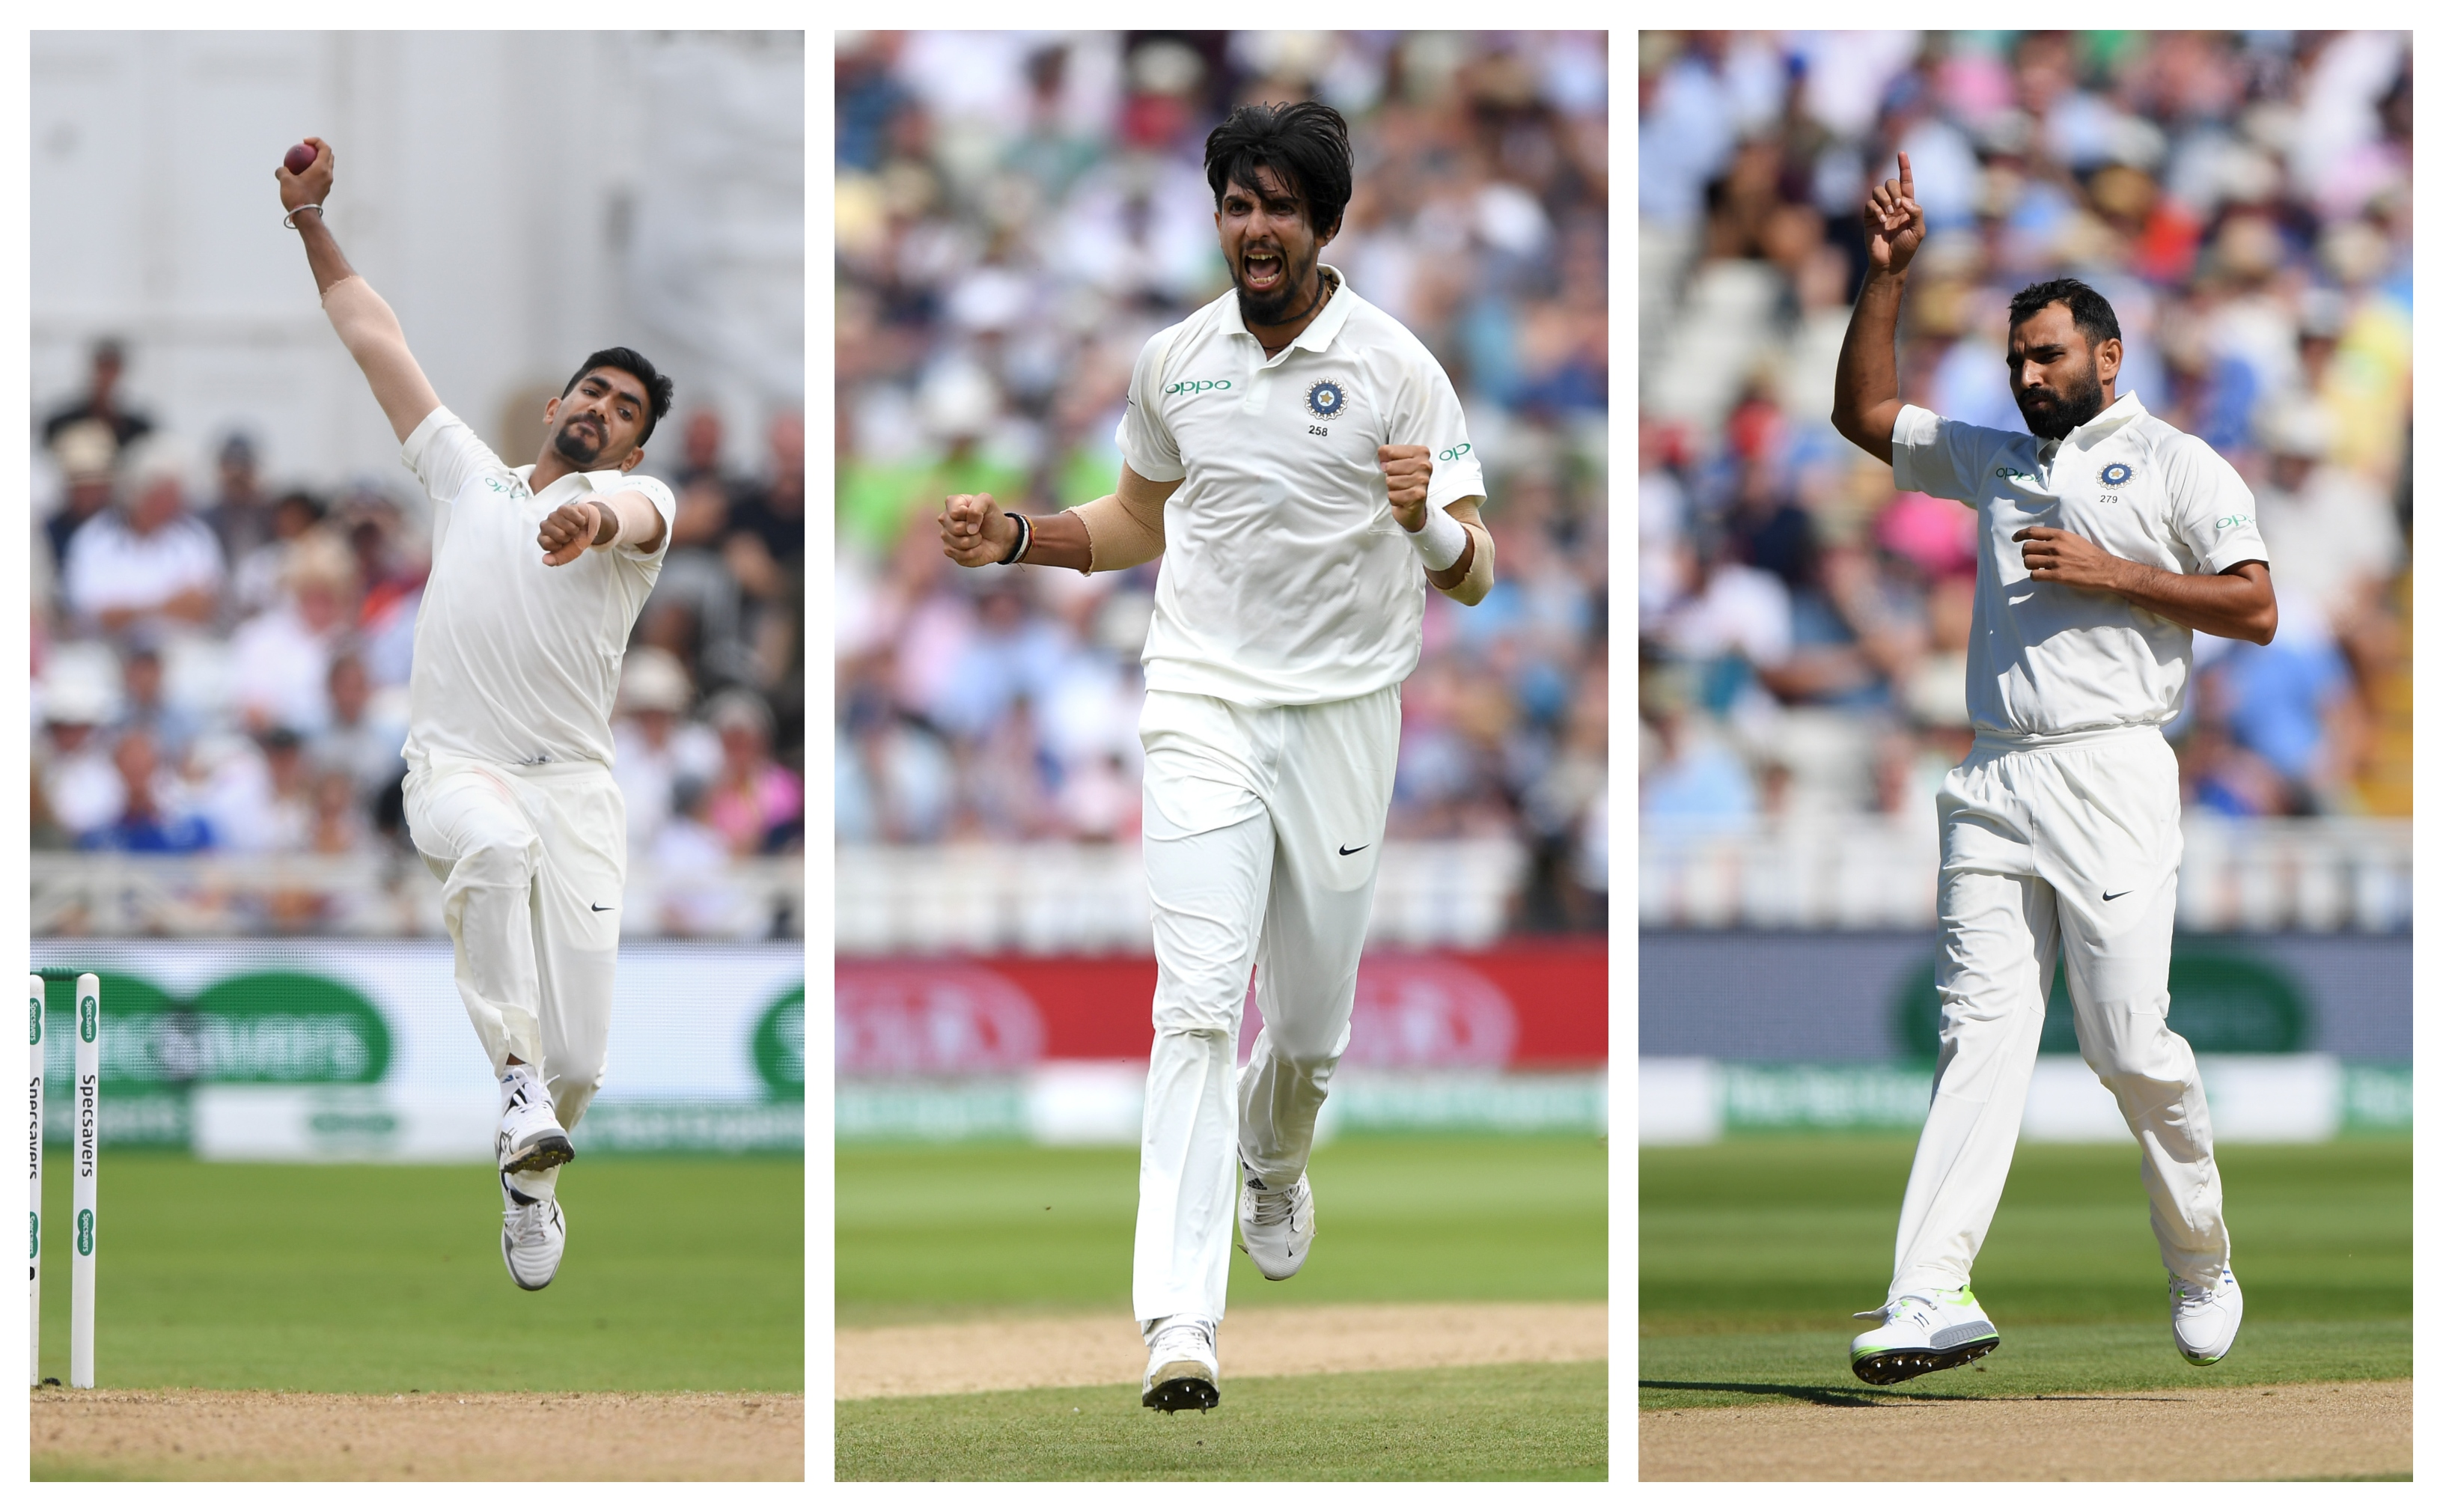 The trio of Ishant Sharma, Mohammad Shami and Jasprit Bumrah came out from the tour with their reputation enhanced.